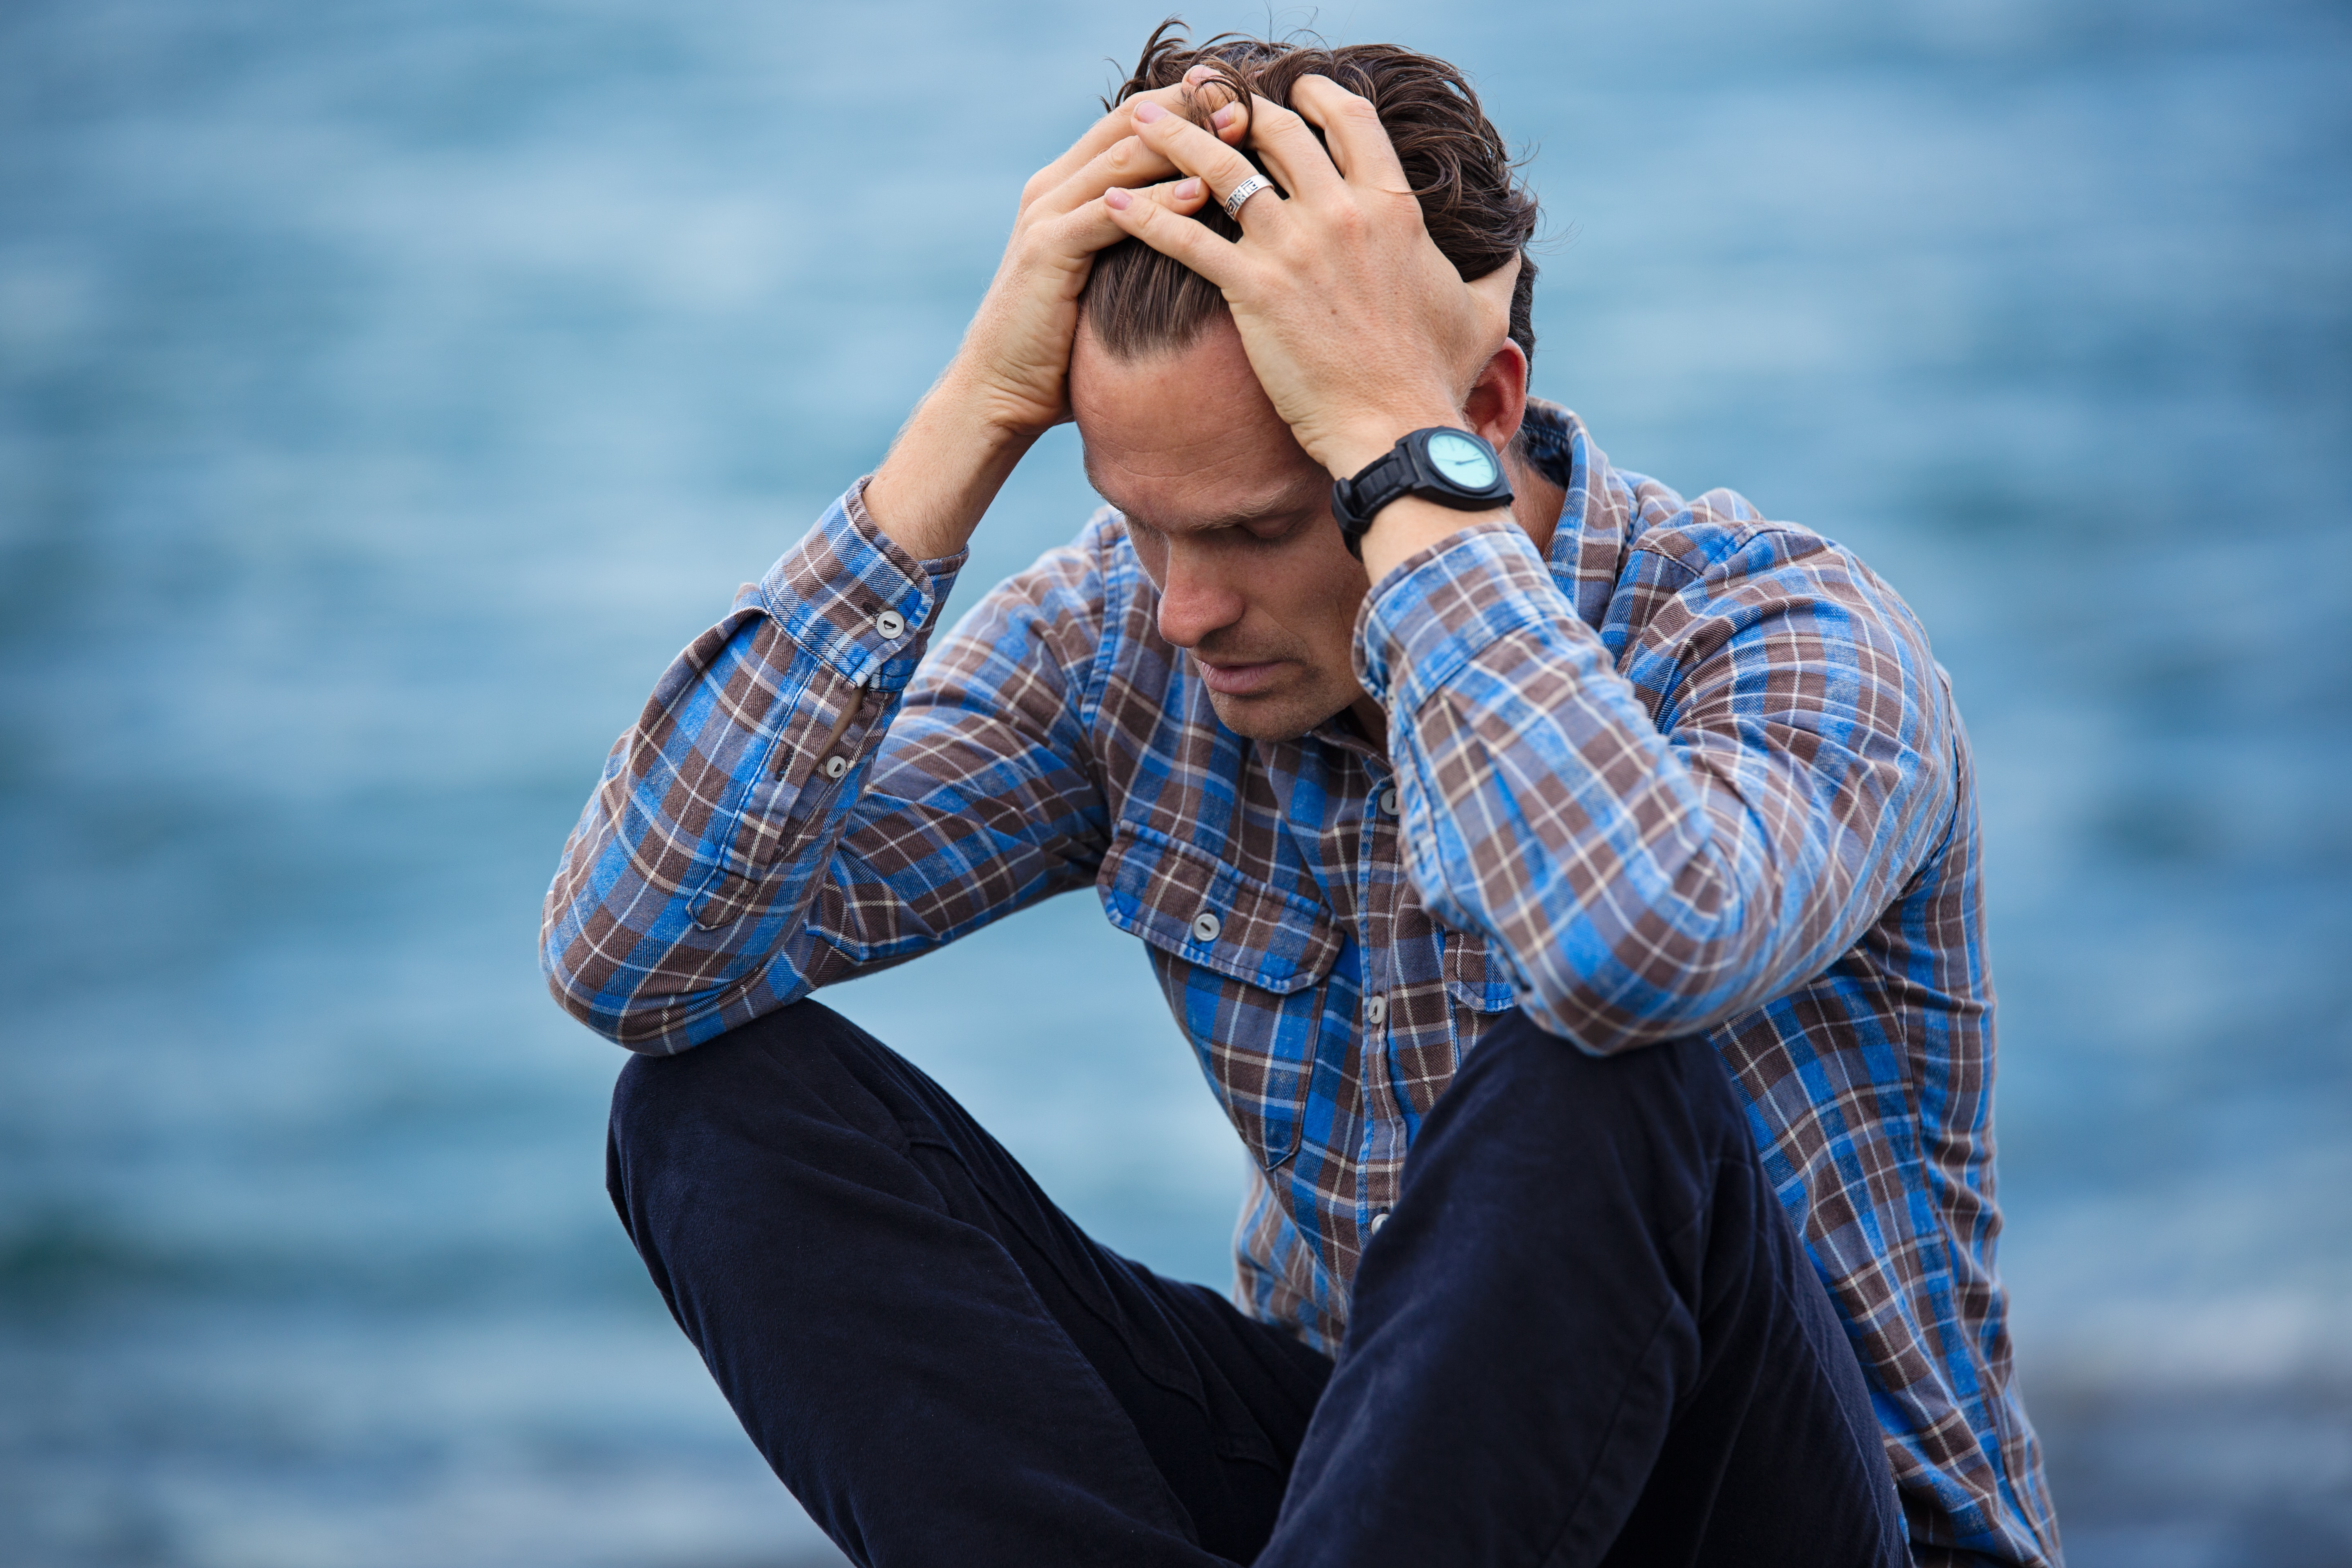 Erectile dysfunction: What can I do?